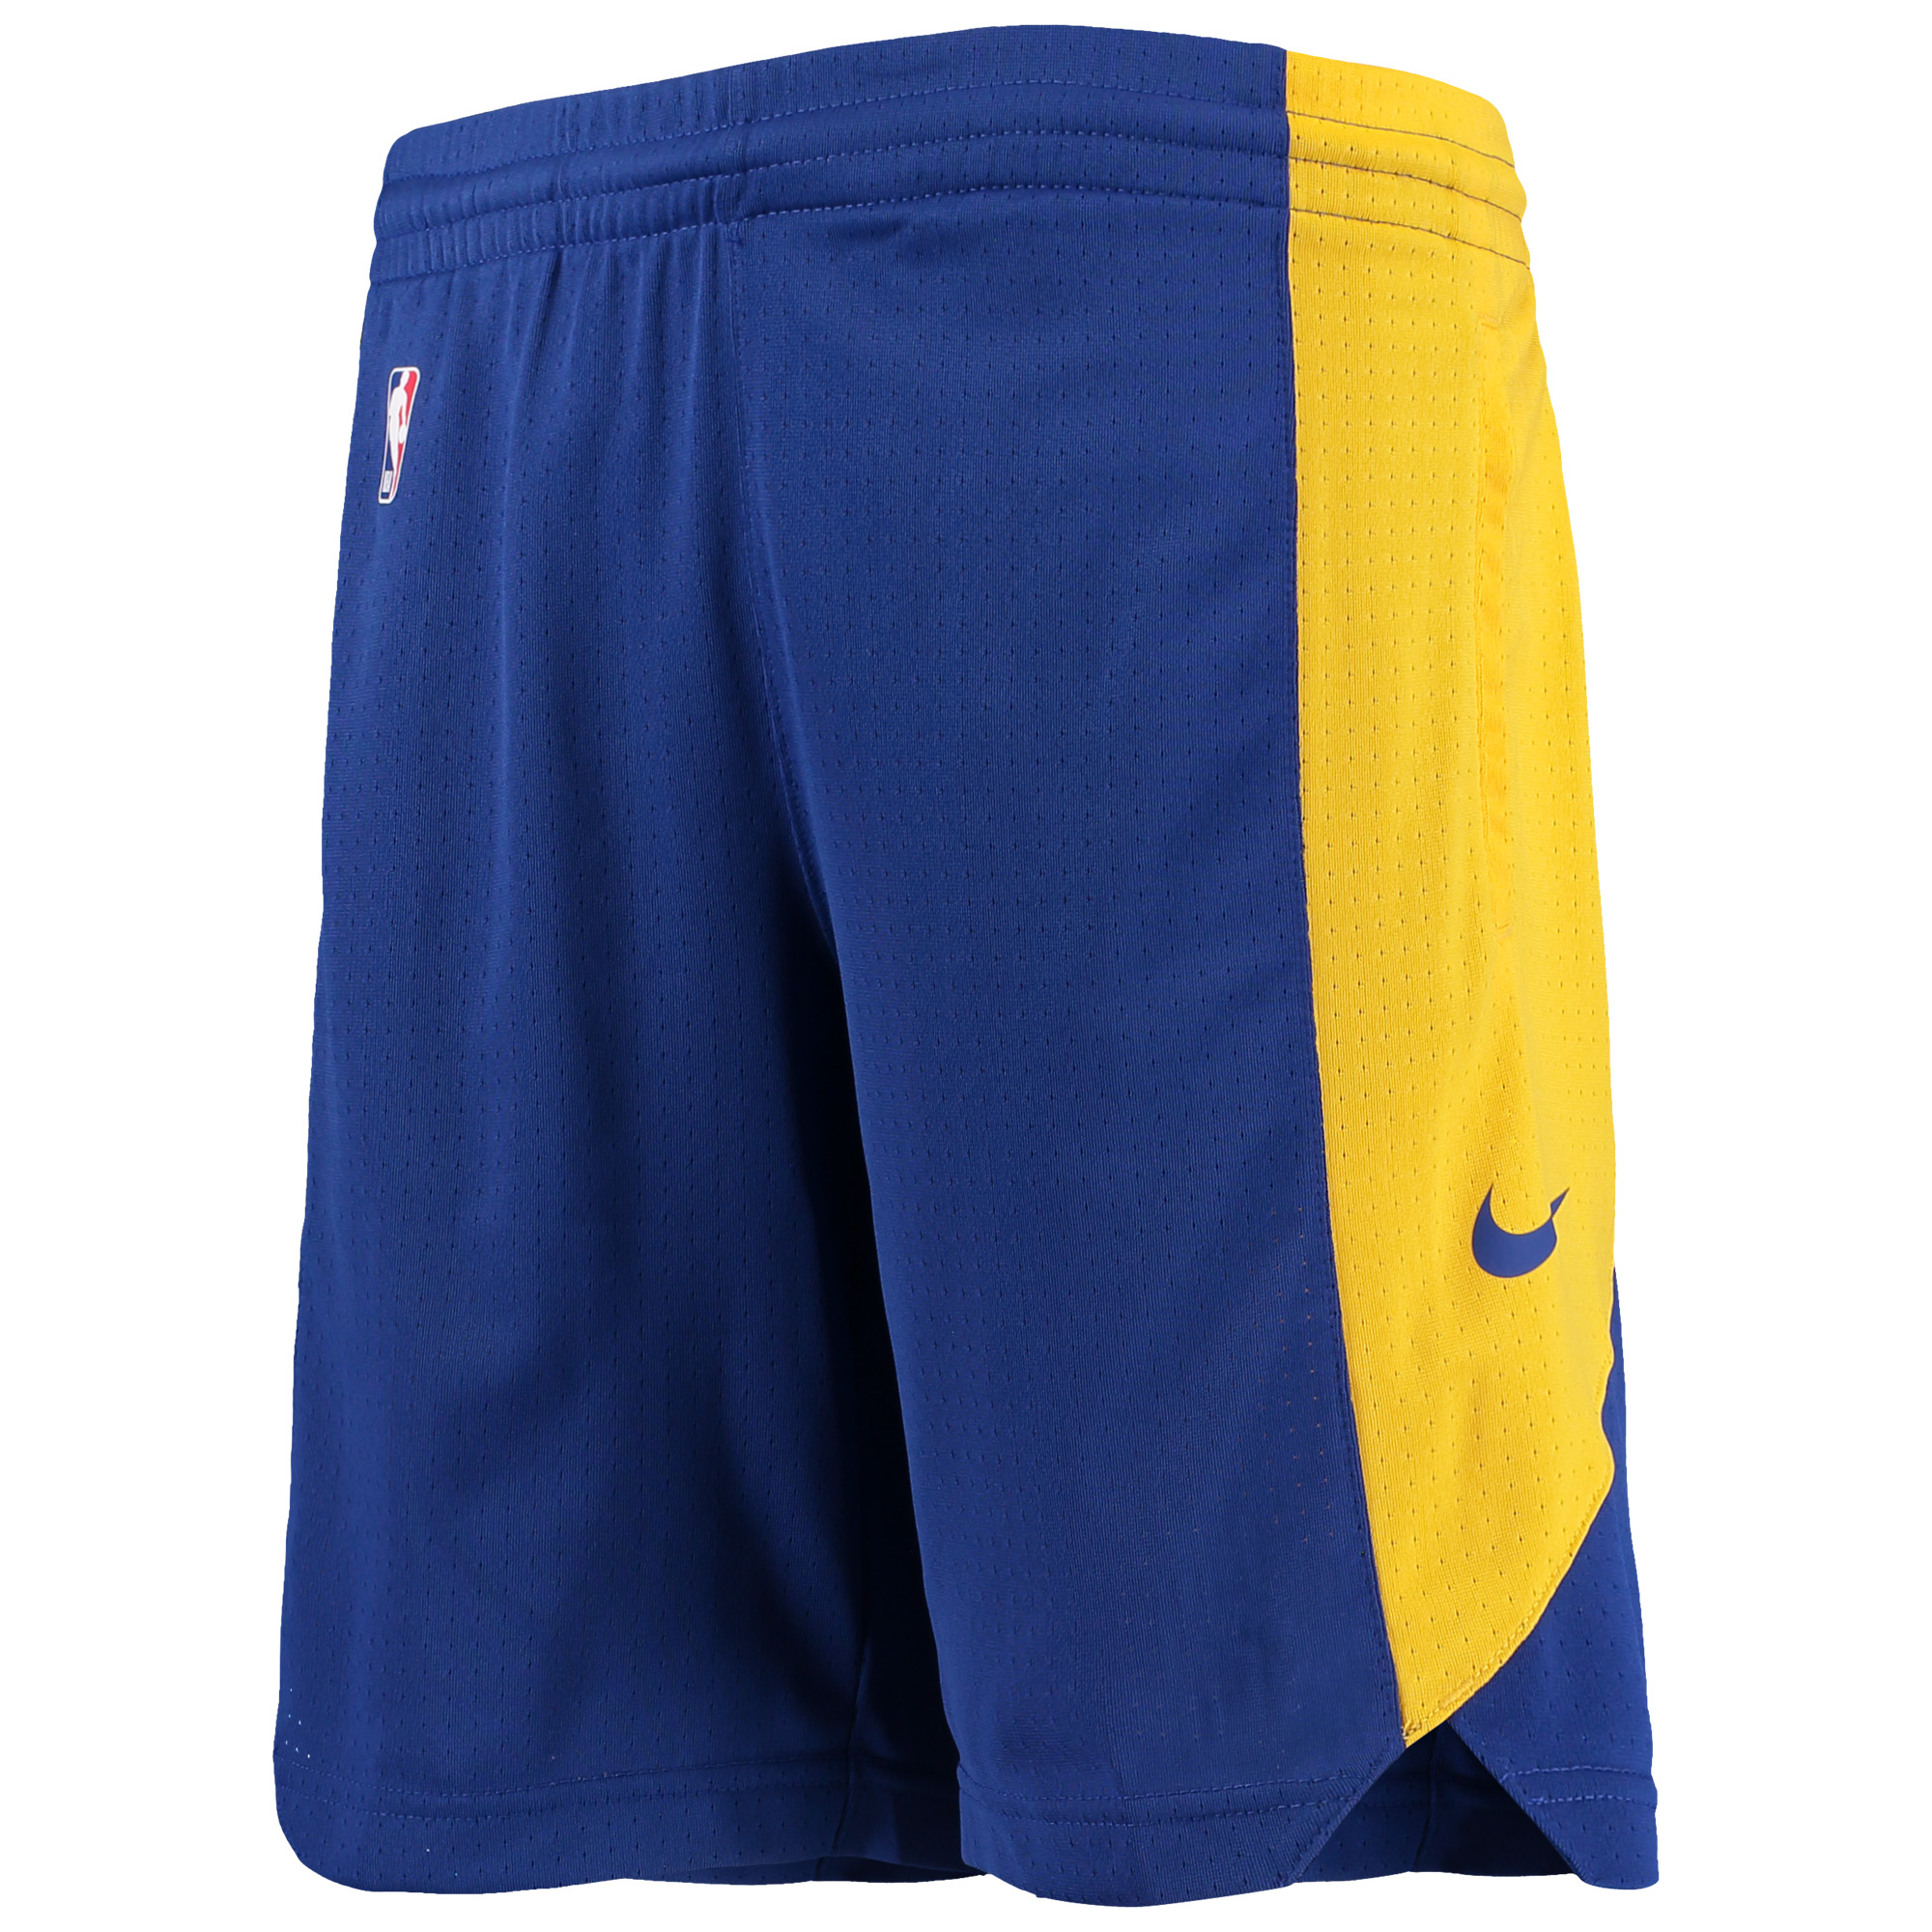 Golden State Warriors Nike Youth Performance Practice Shorts - Royal/Gold